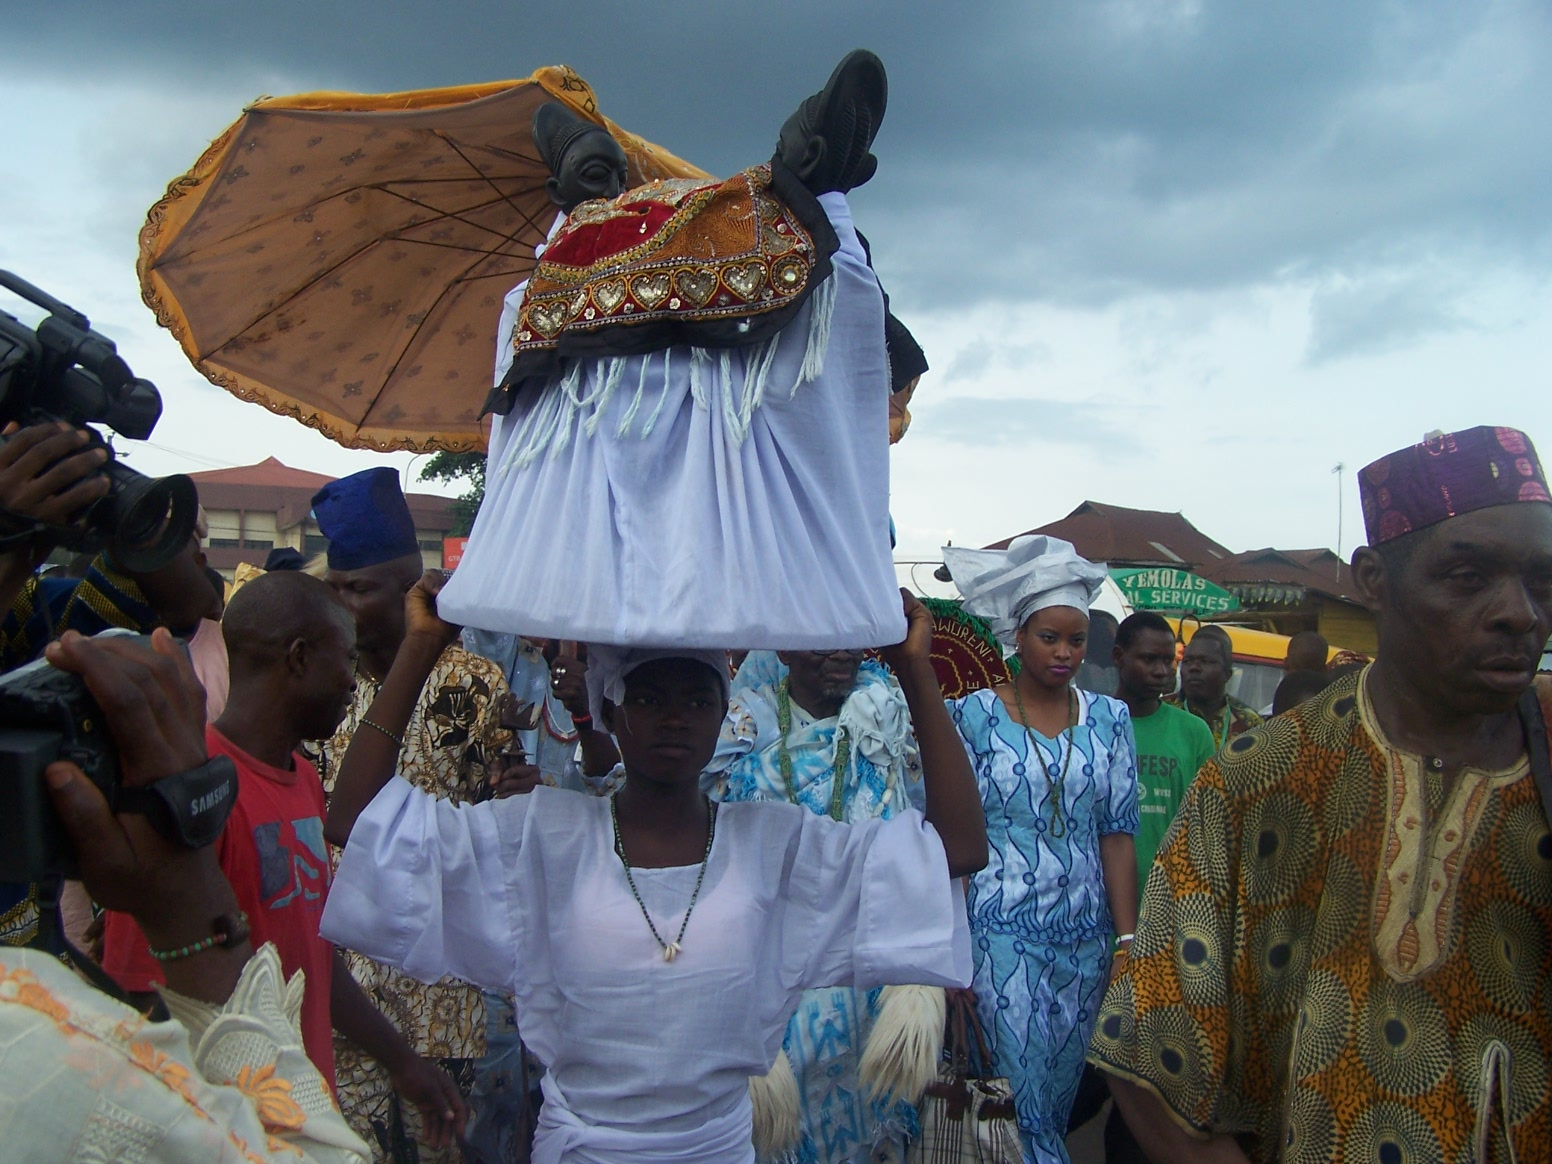 102 3061 Ife People: The Ancient Artistic, Highly Spiritual And The First Yoruba People